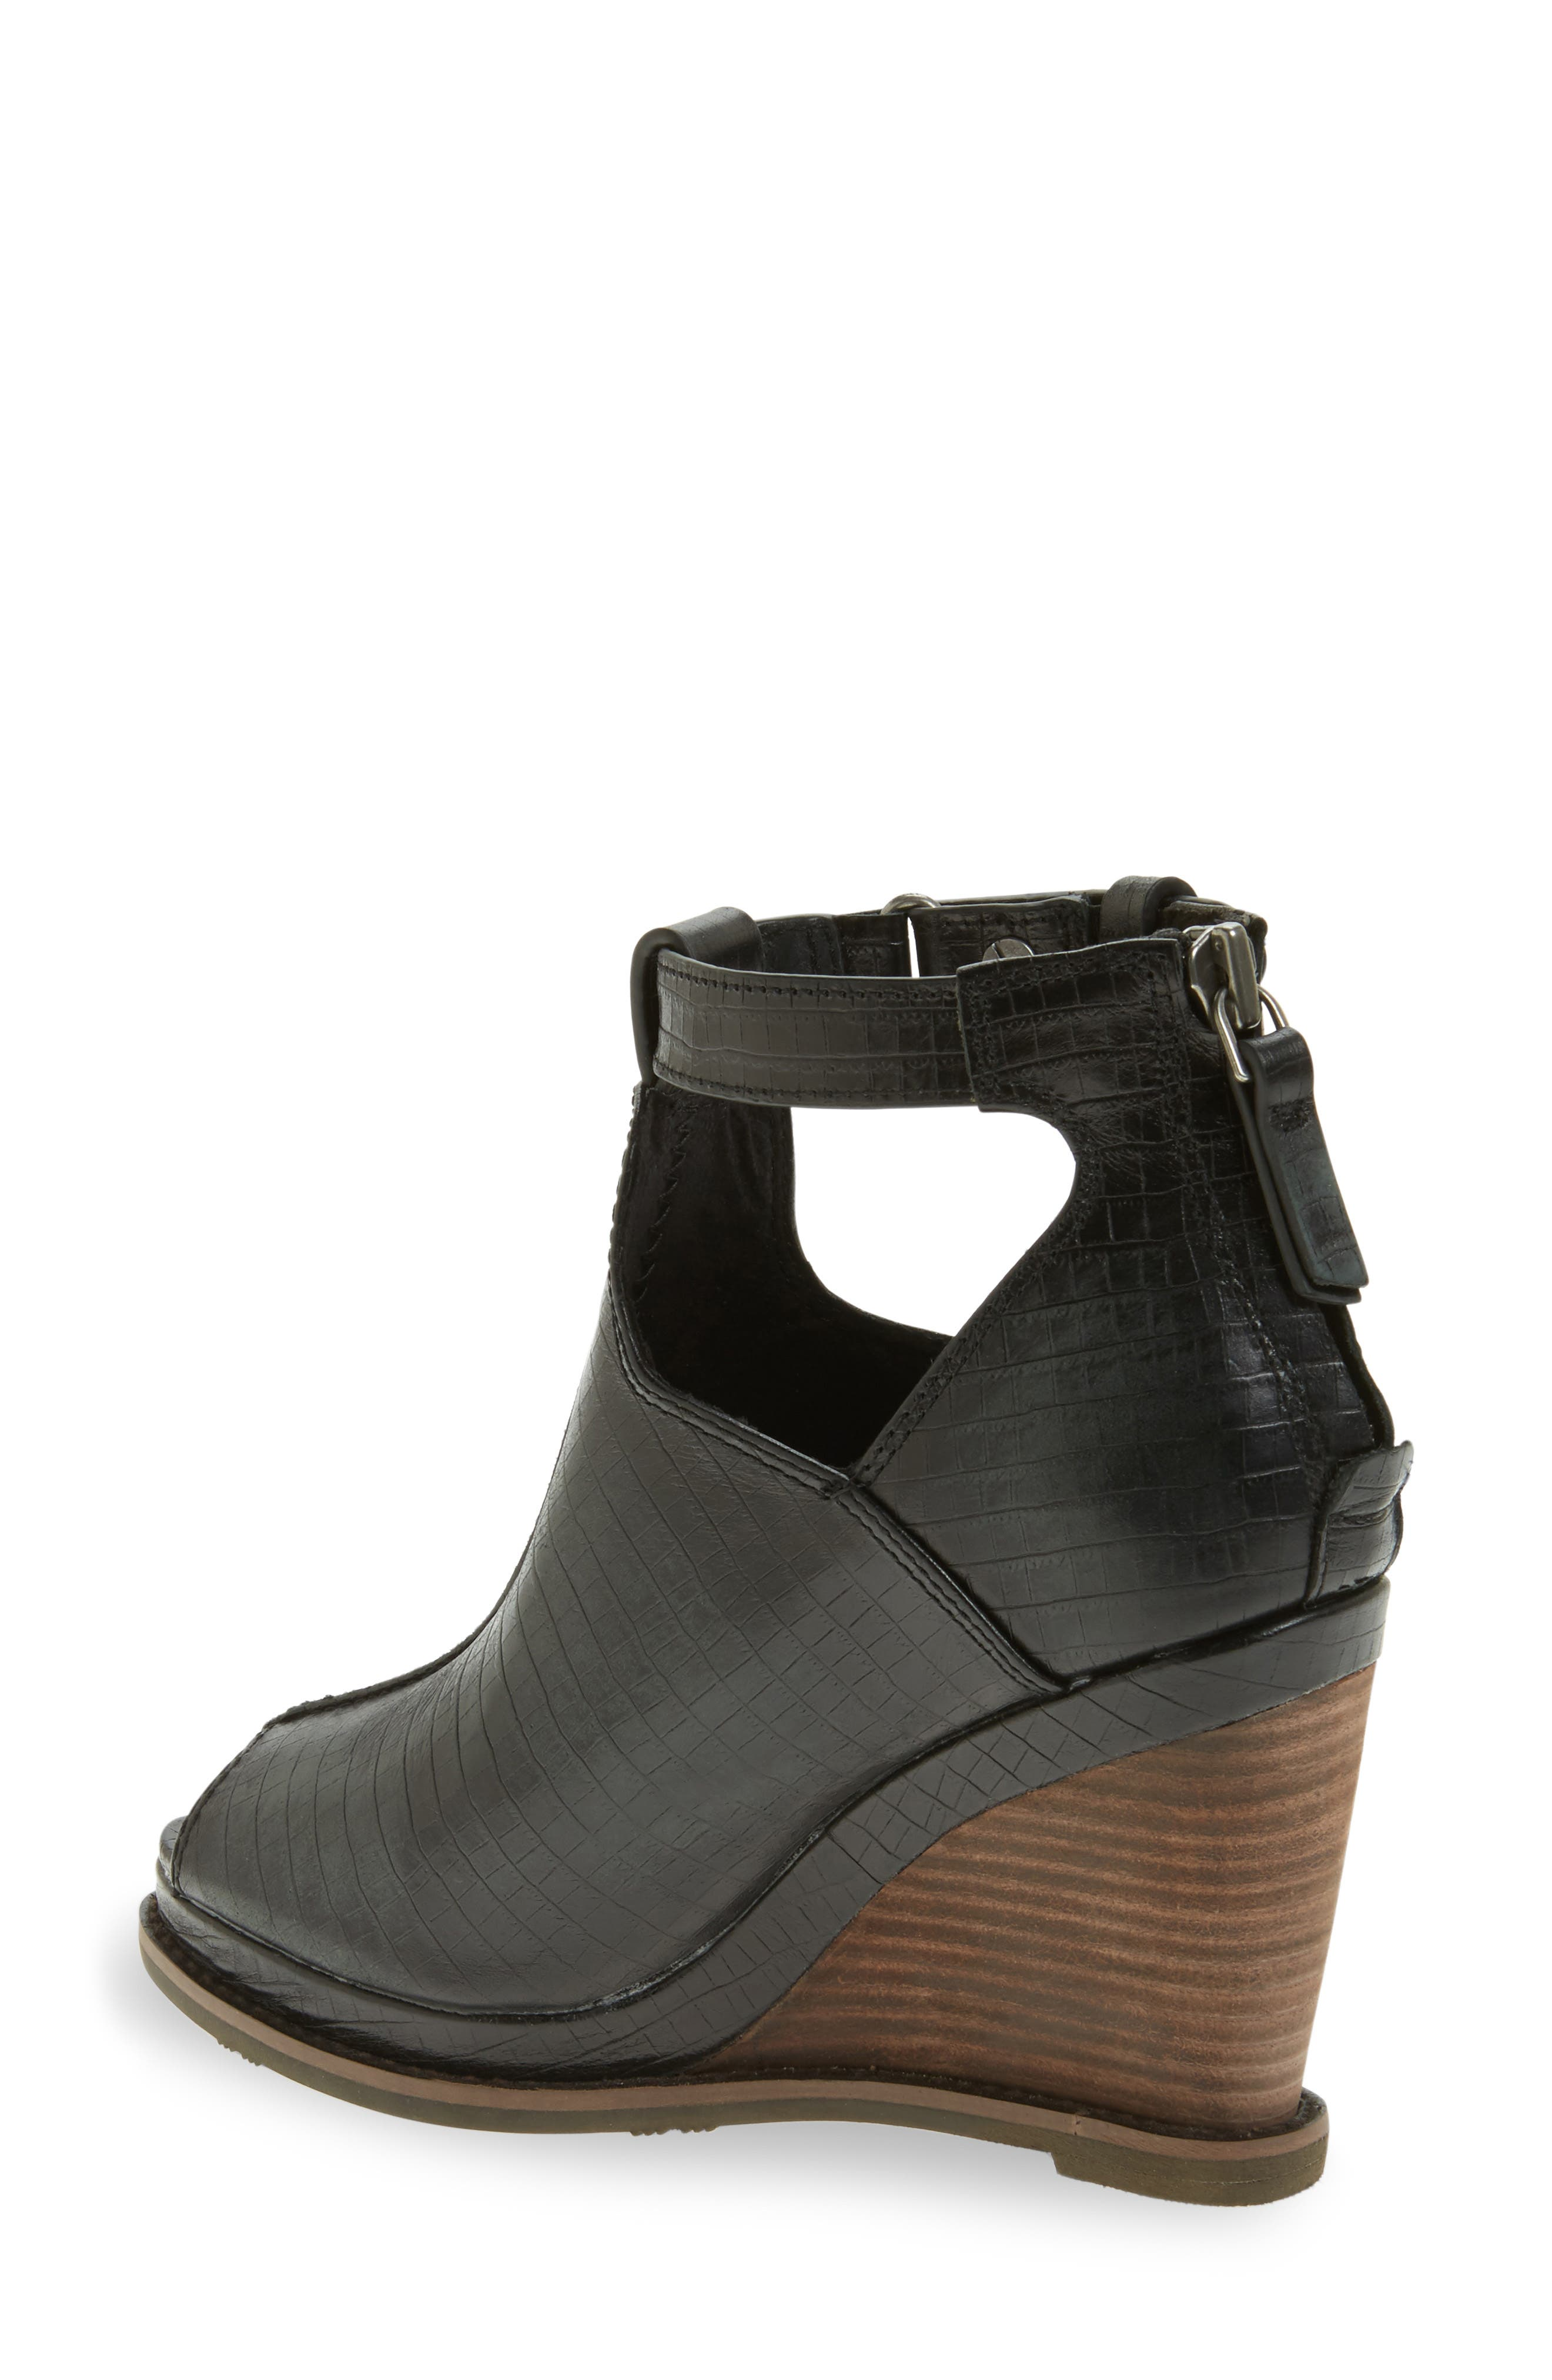 Backstage Wedge Bootie,                             Alternate thumbnail 2, color,                             001